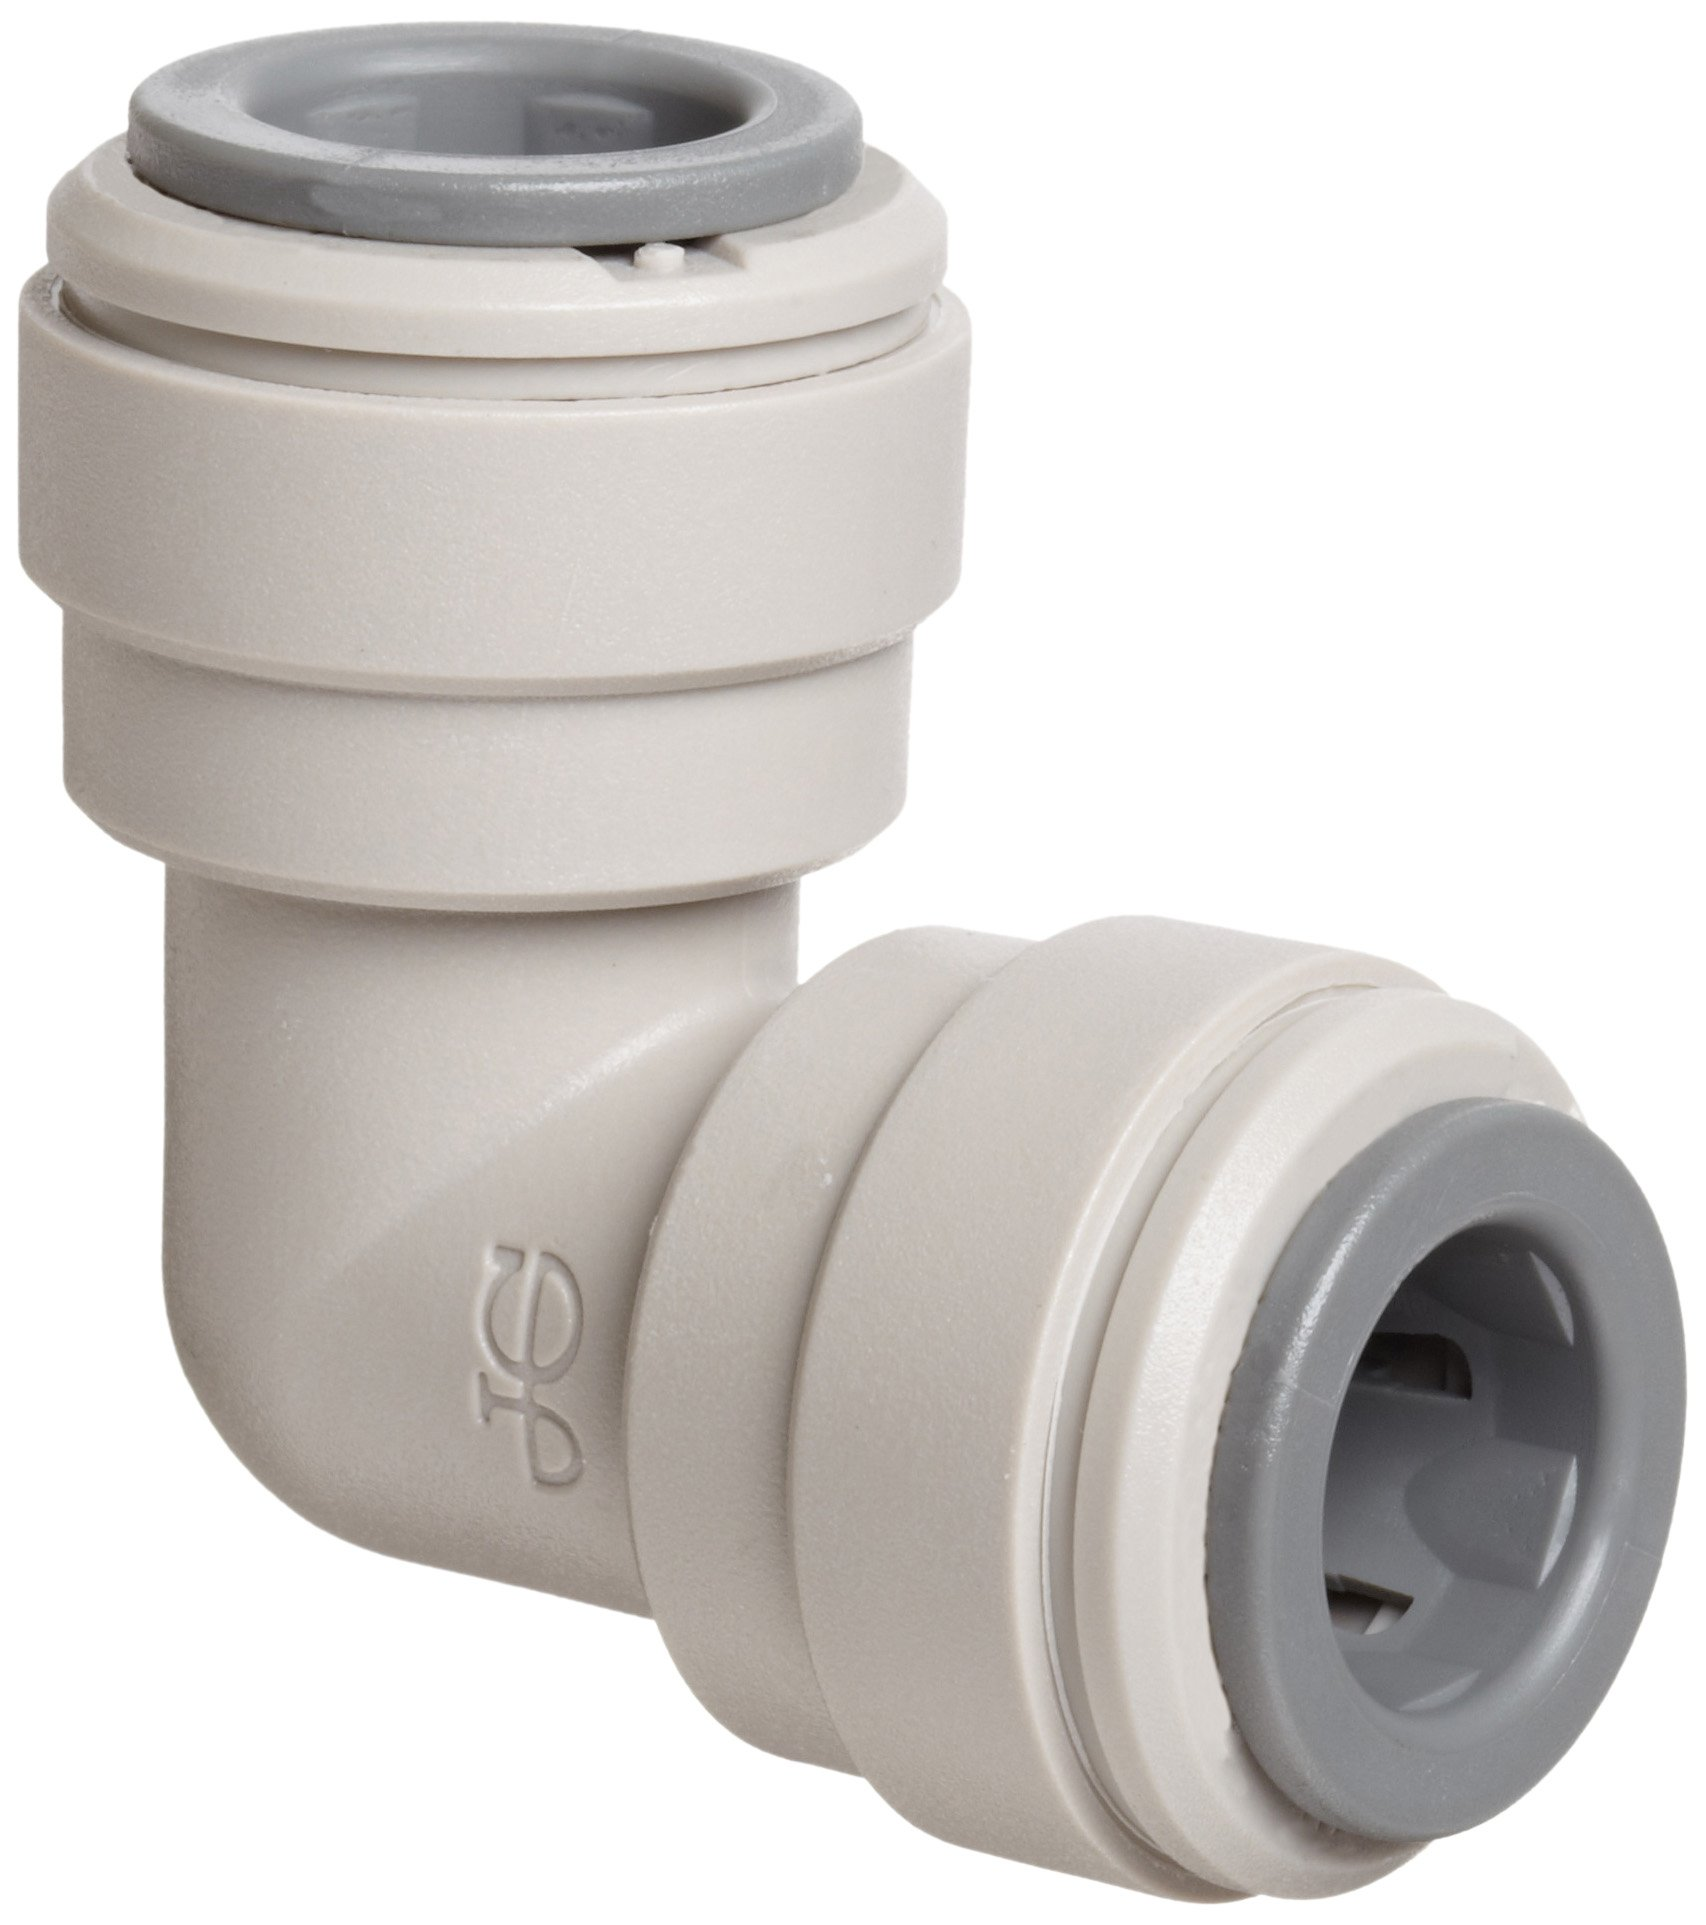 John Guest Acetal Copolymer Tube Fitting, Union Elbow, 3/8'' Tube OD (Pack of 10)